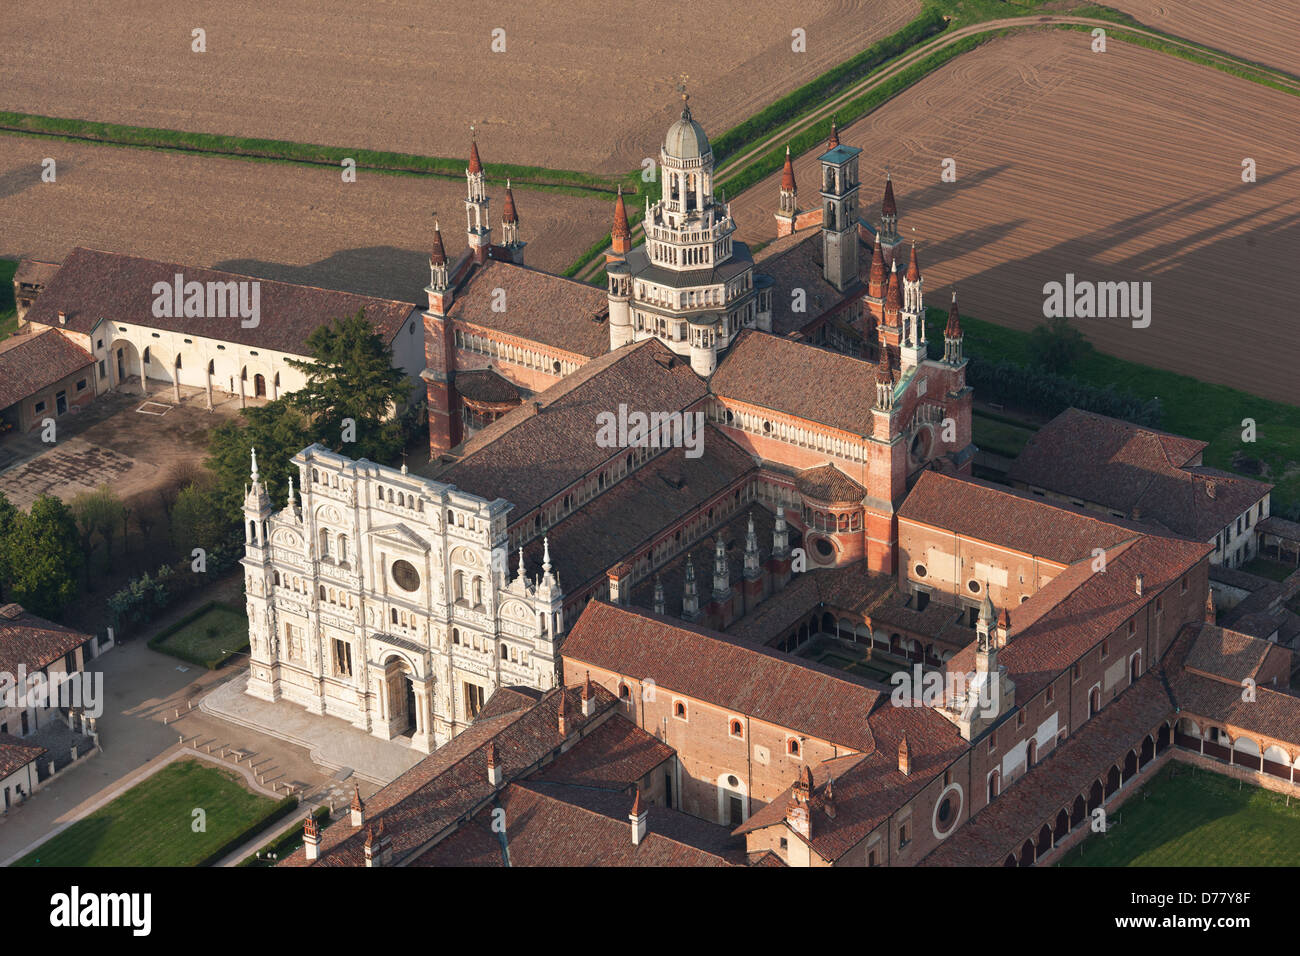 CERTOSA DI PAVIA (aerial view). Carthusian monastery south of Milan, in the Po Valley, Lombardy, Italy. - Stock Image